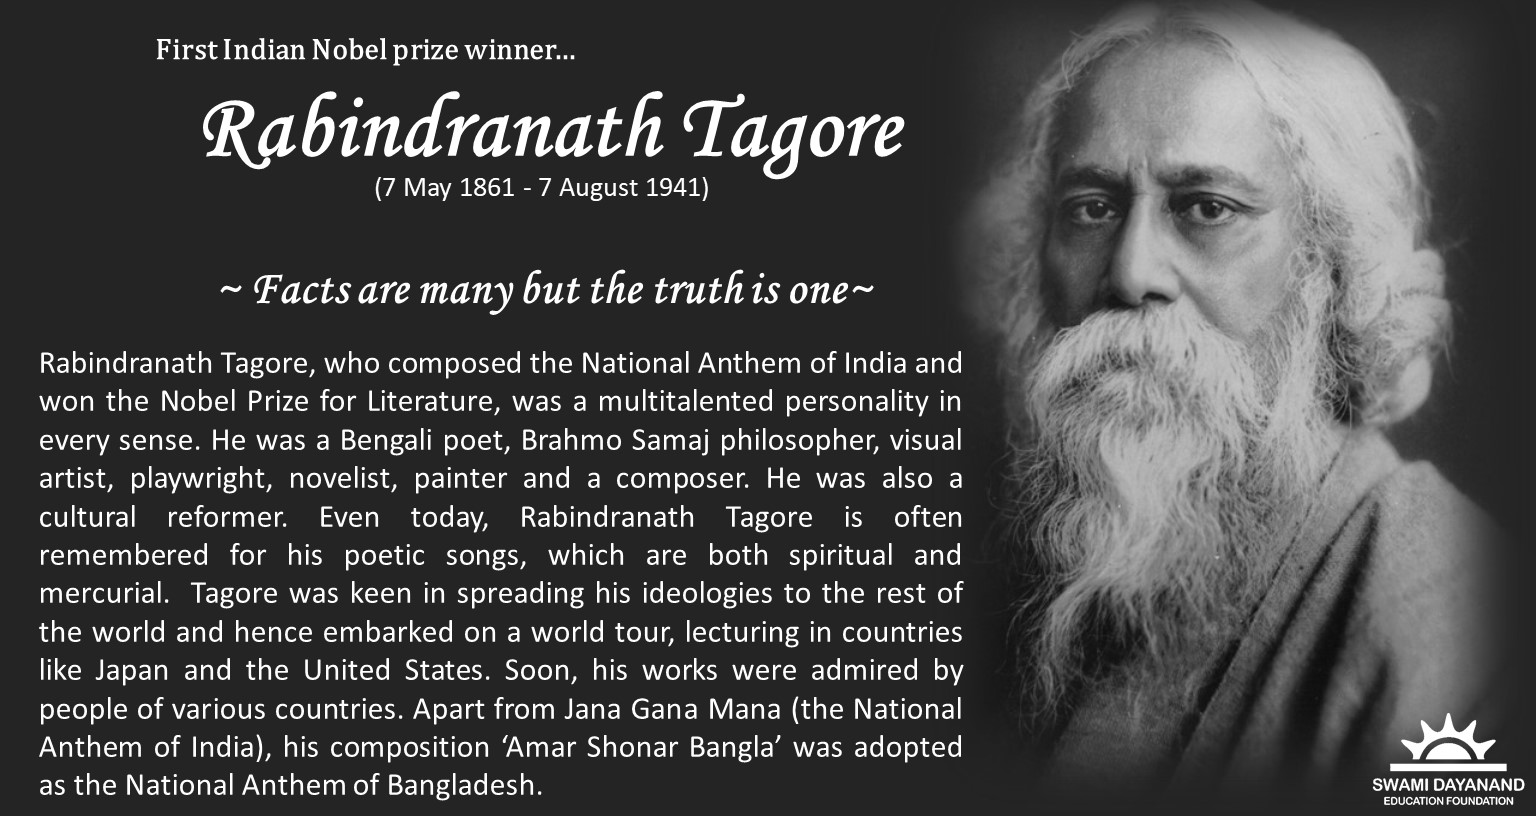 RABINDRANATH TAGORE  (7th May 1861 - 7th Aug 1941)